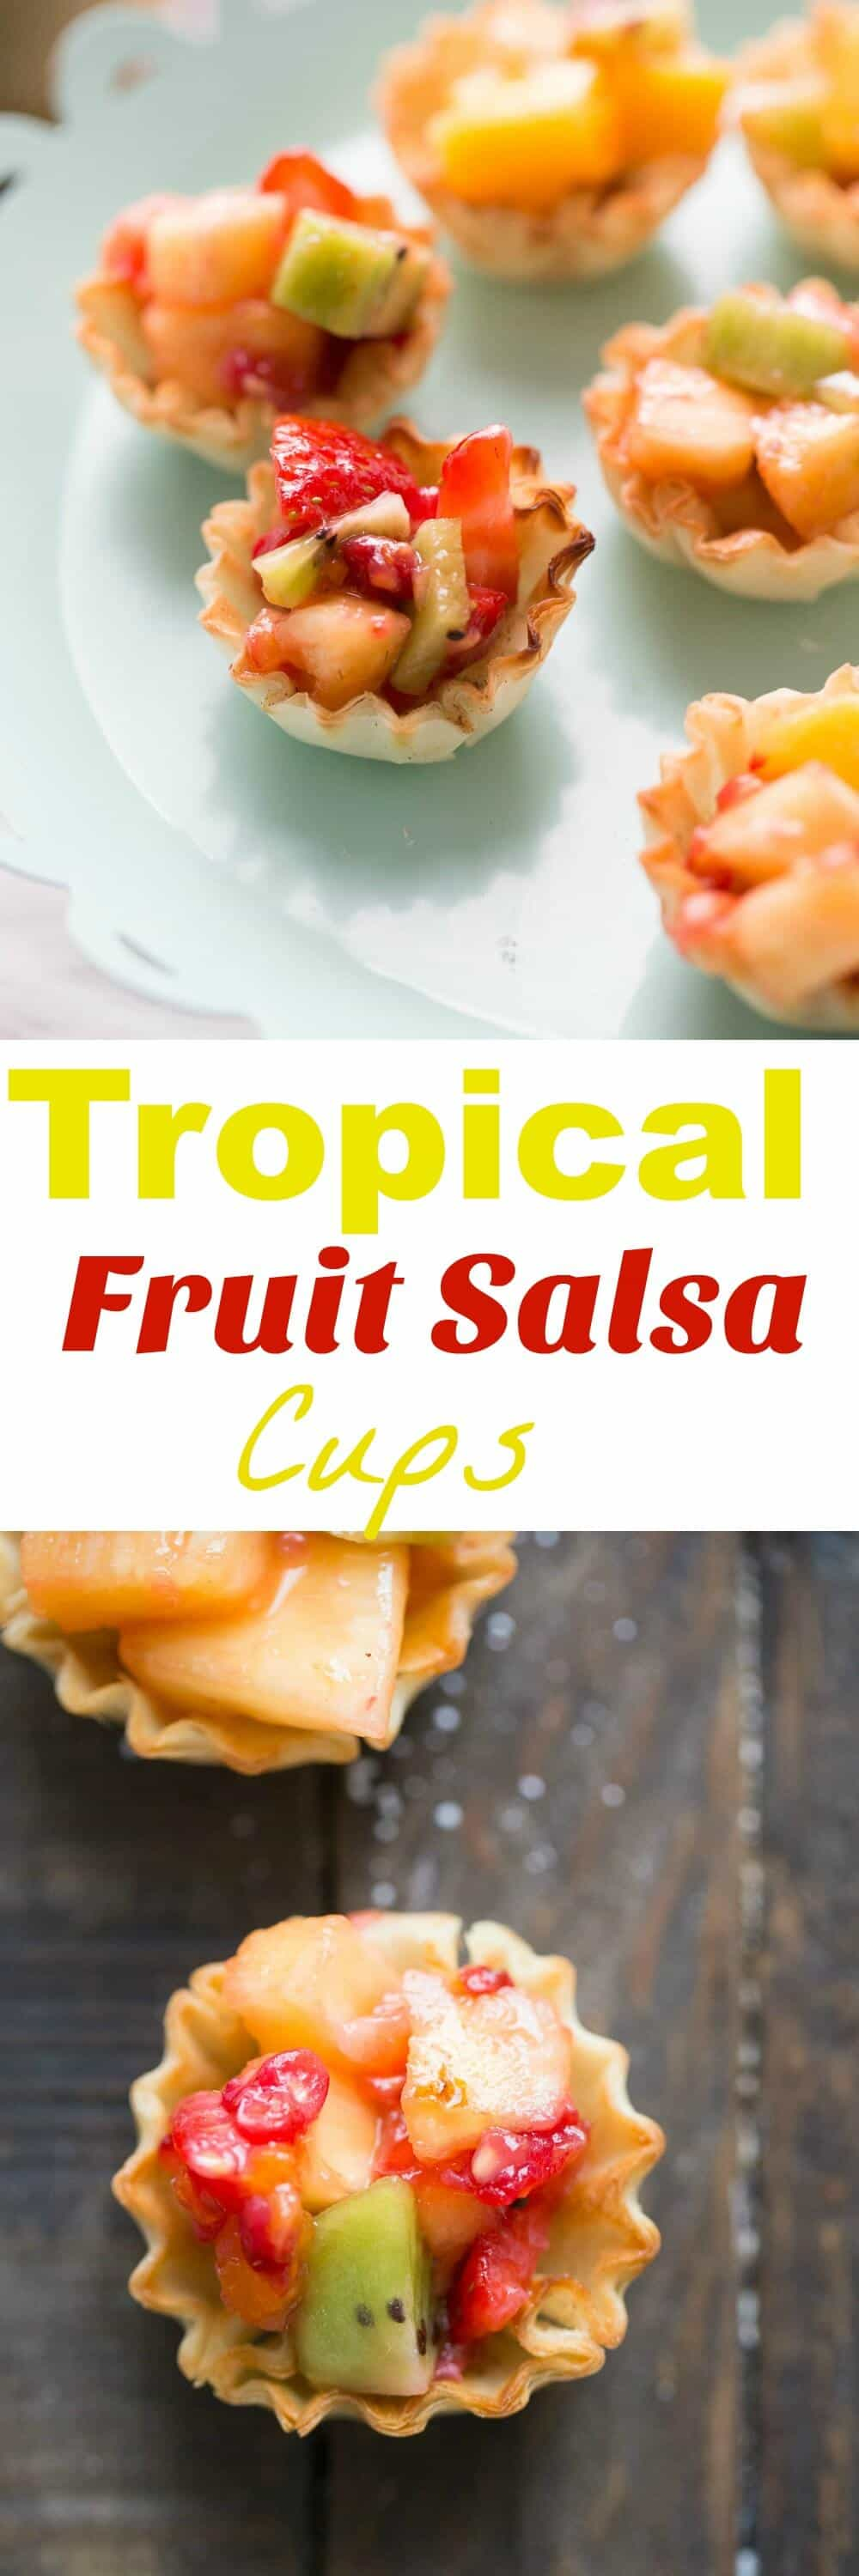 Fruit salsa is always a crowd pleasure. These little cups feature cinnamon sugar flavored phyllo shells that are filled with sweet, tropical fruit.  Serve these as appetizers or desserts.  Either way they will be a huge hit! lemonsforlulu.com